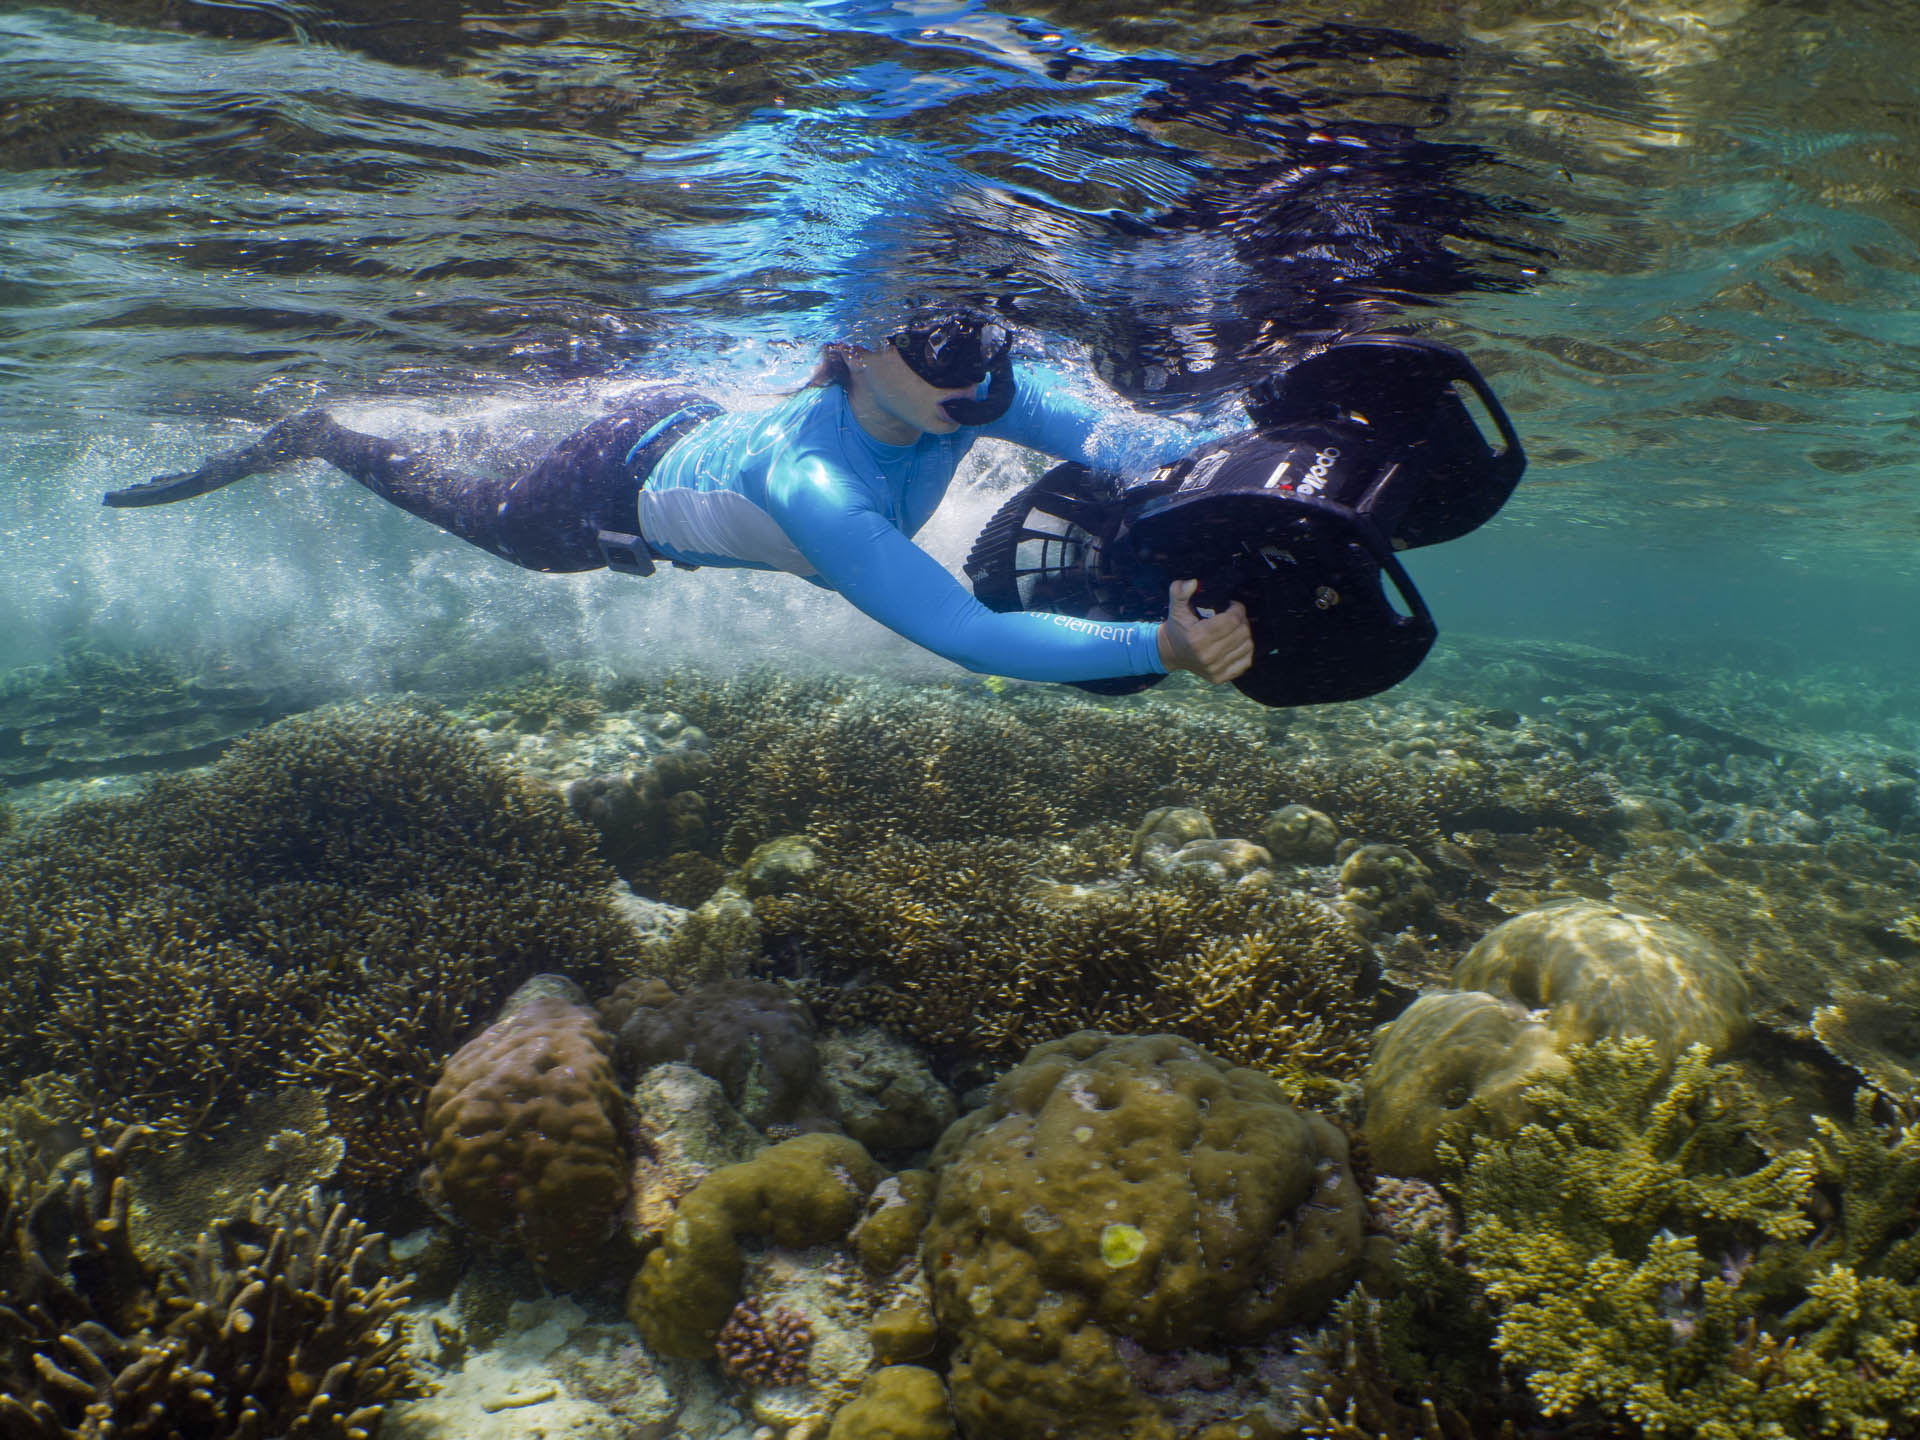 snorkeler riding an underwater scooter